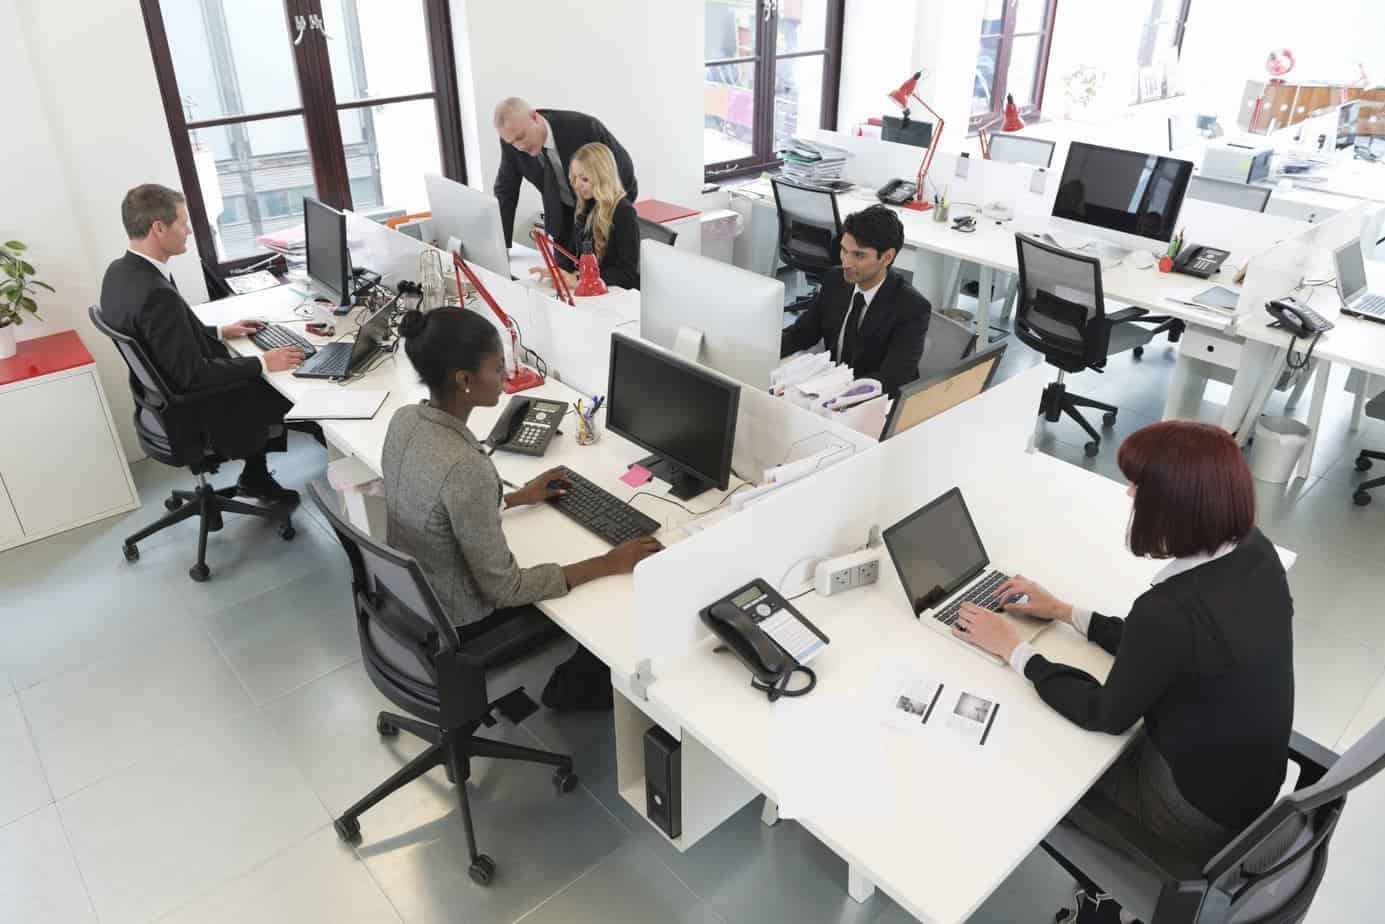 Confirmed: Desk jobs and lots of daily sitting lead to an early grave